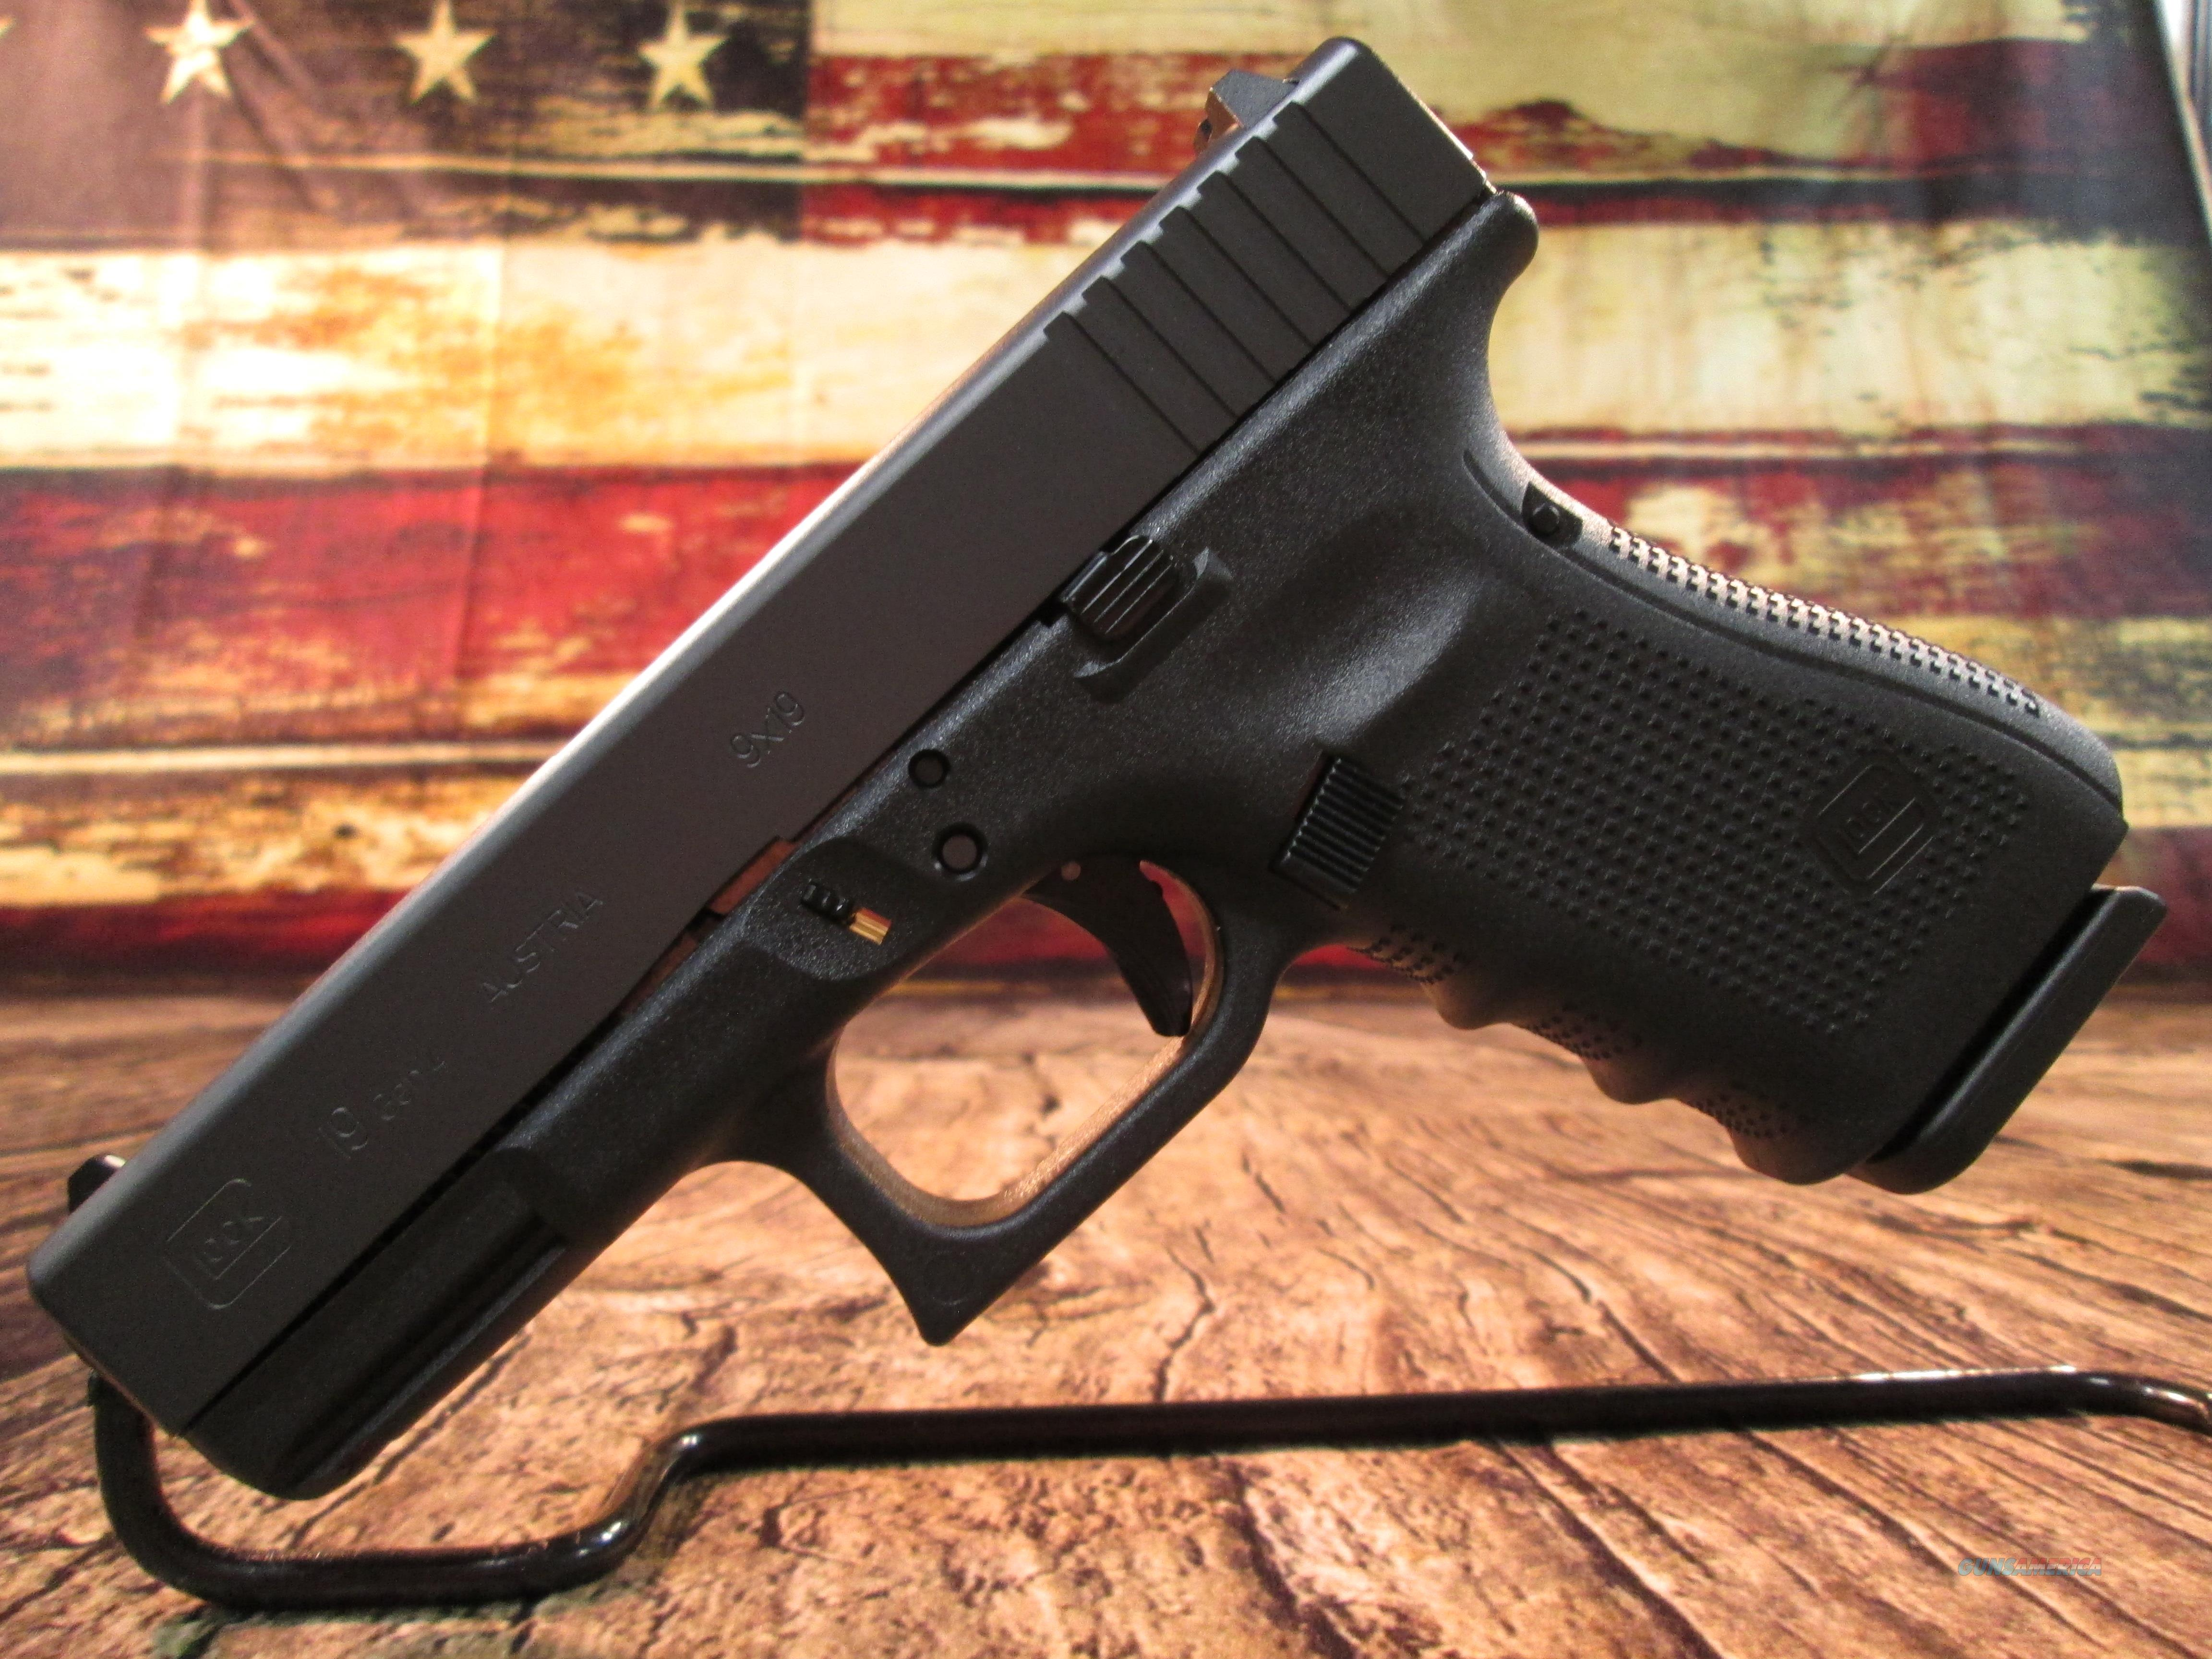 GLOCK NEW MODEL 19 GENERATION 4 .9MM CAL. WITH 3 HIGH CAPACITY MAGAZINES NEW (PG1950203)  Guns > Pistols > Glock Pistols > 19